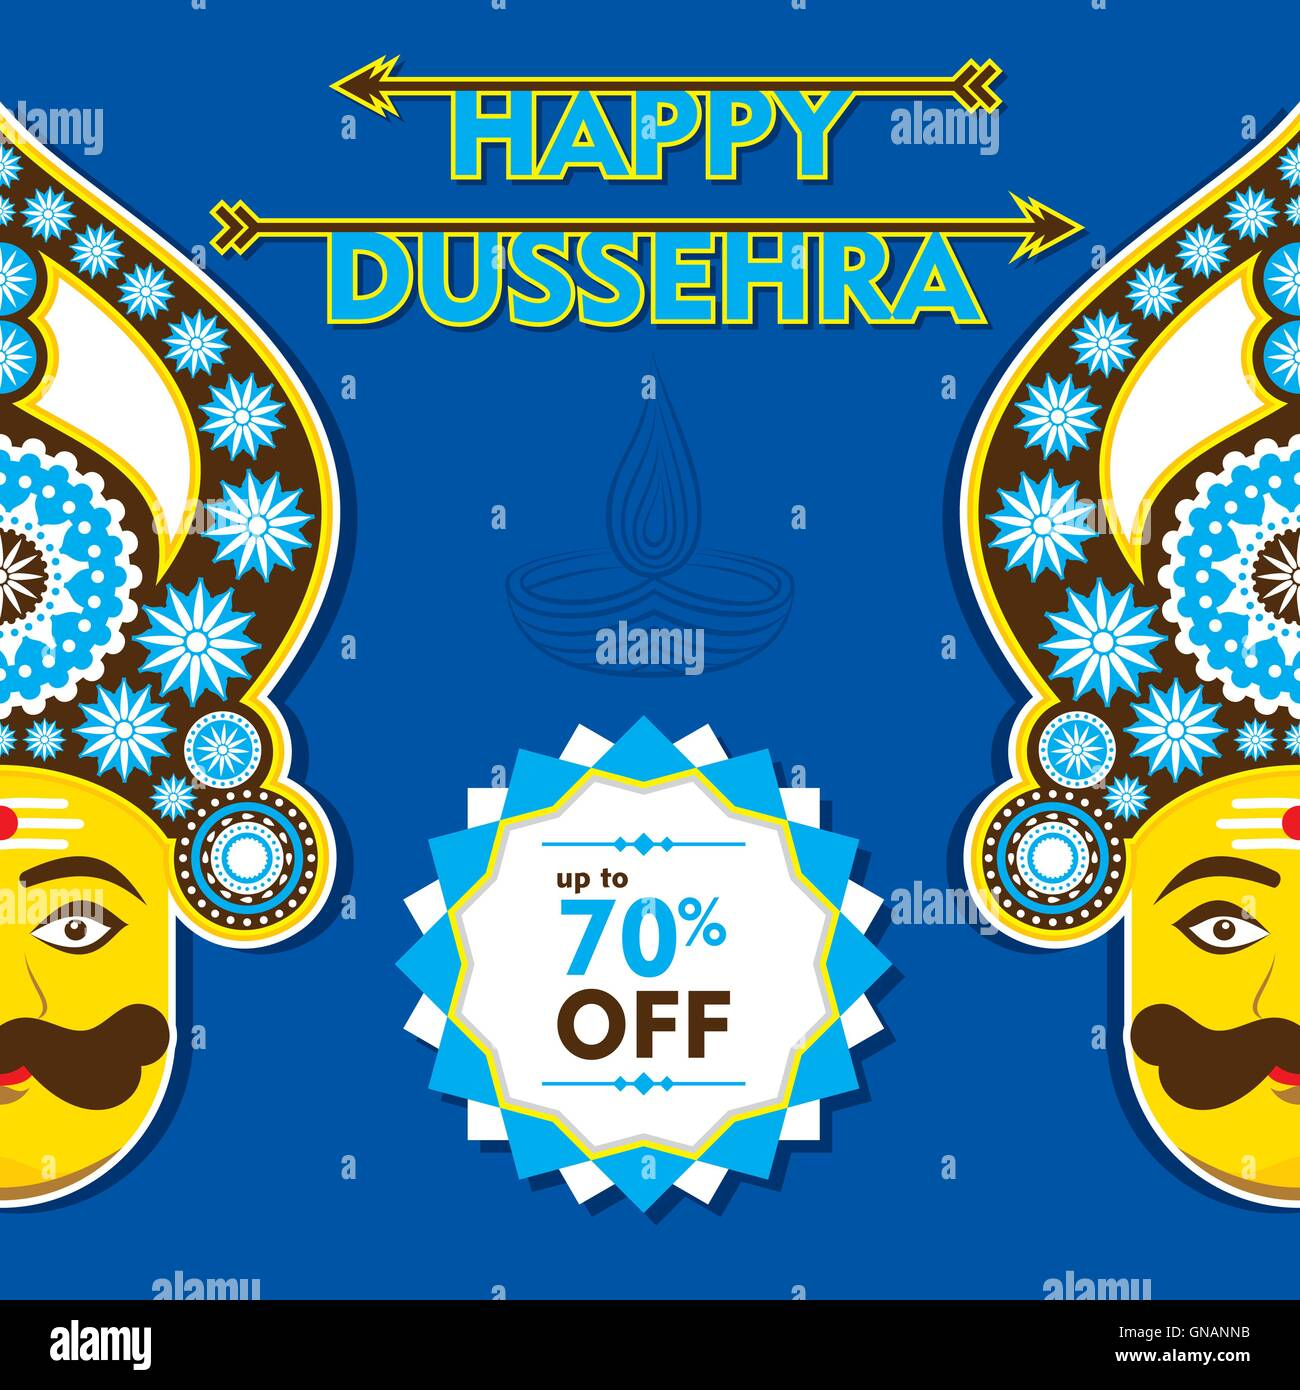 Happy dussehra greeting card or poster design stock vector art happy dussehra greeting card or poster design m4hsunfo